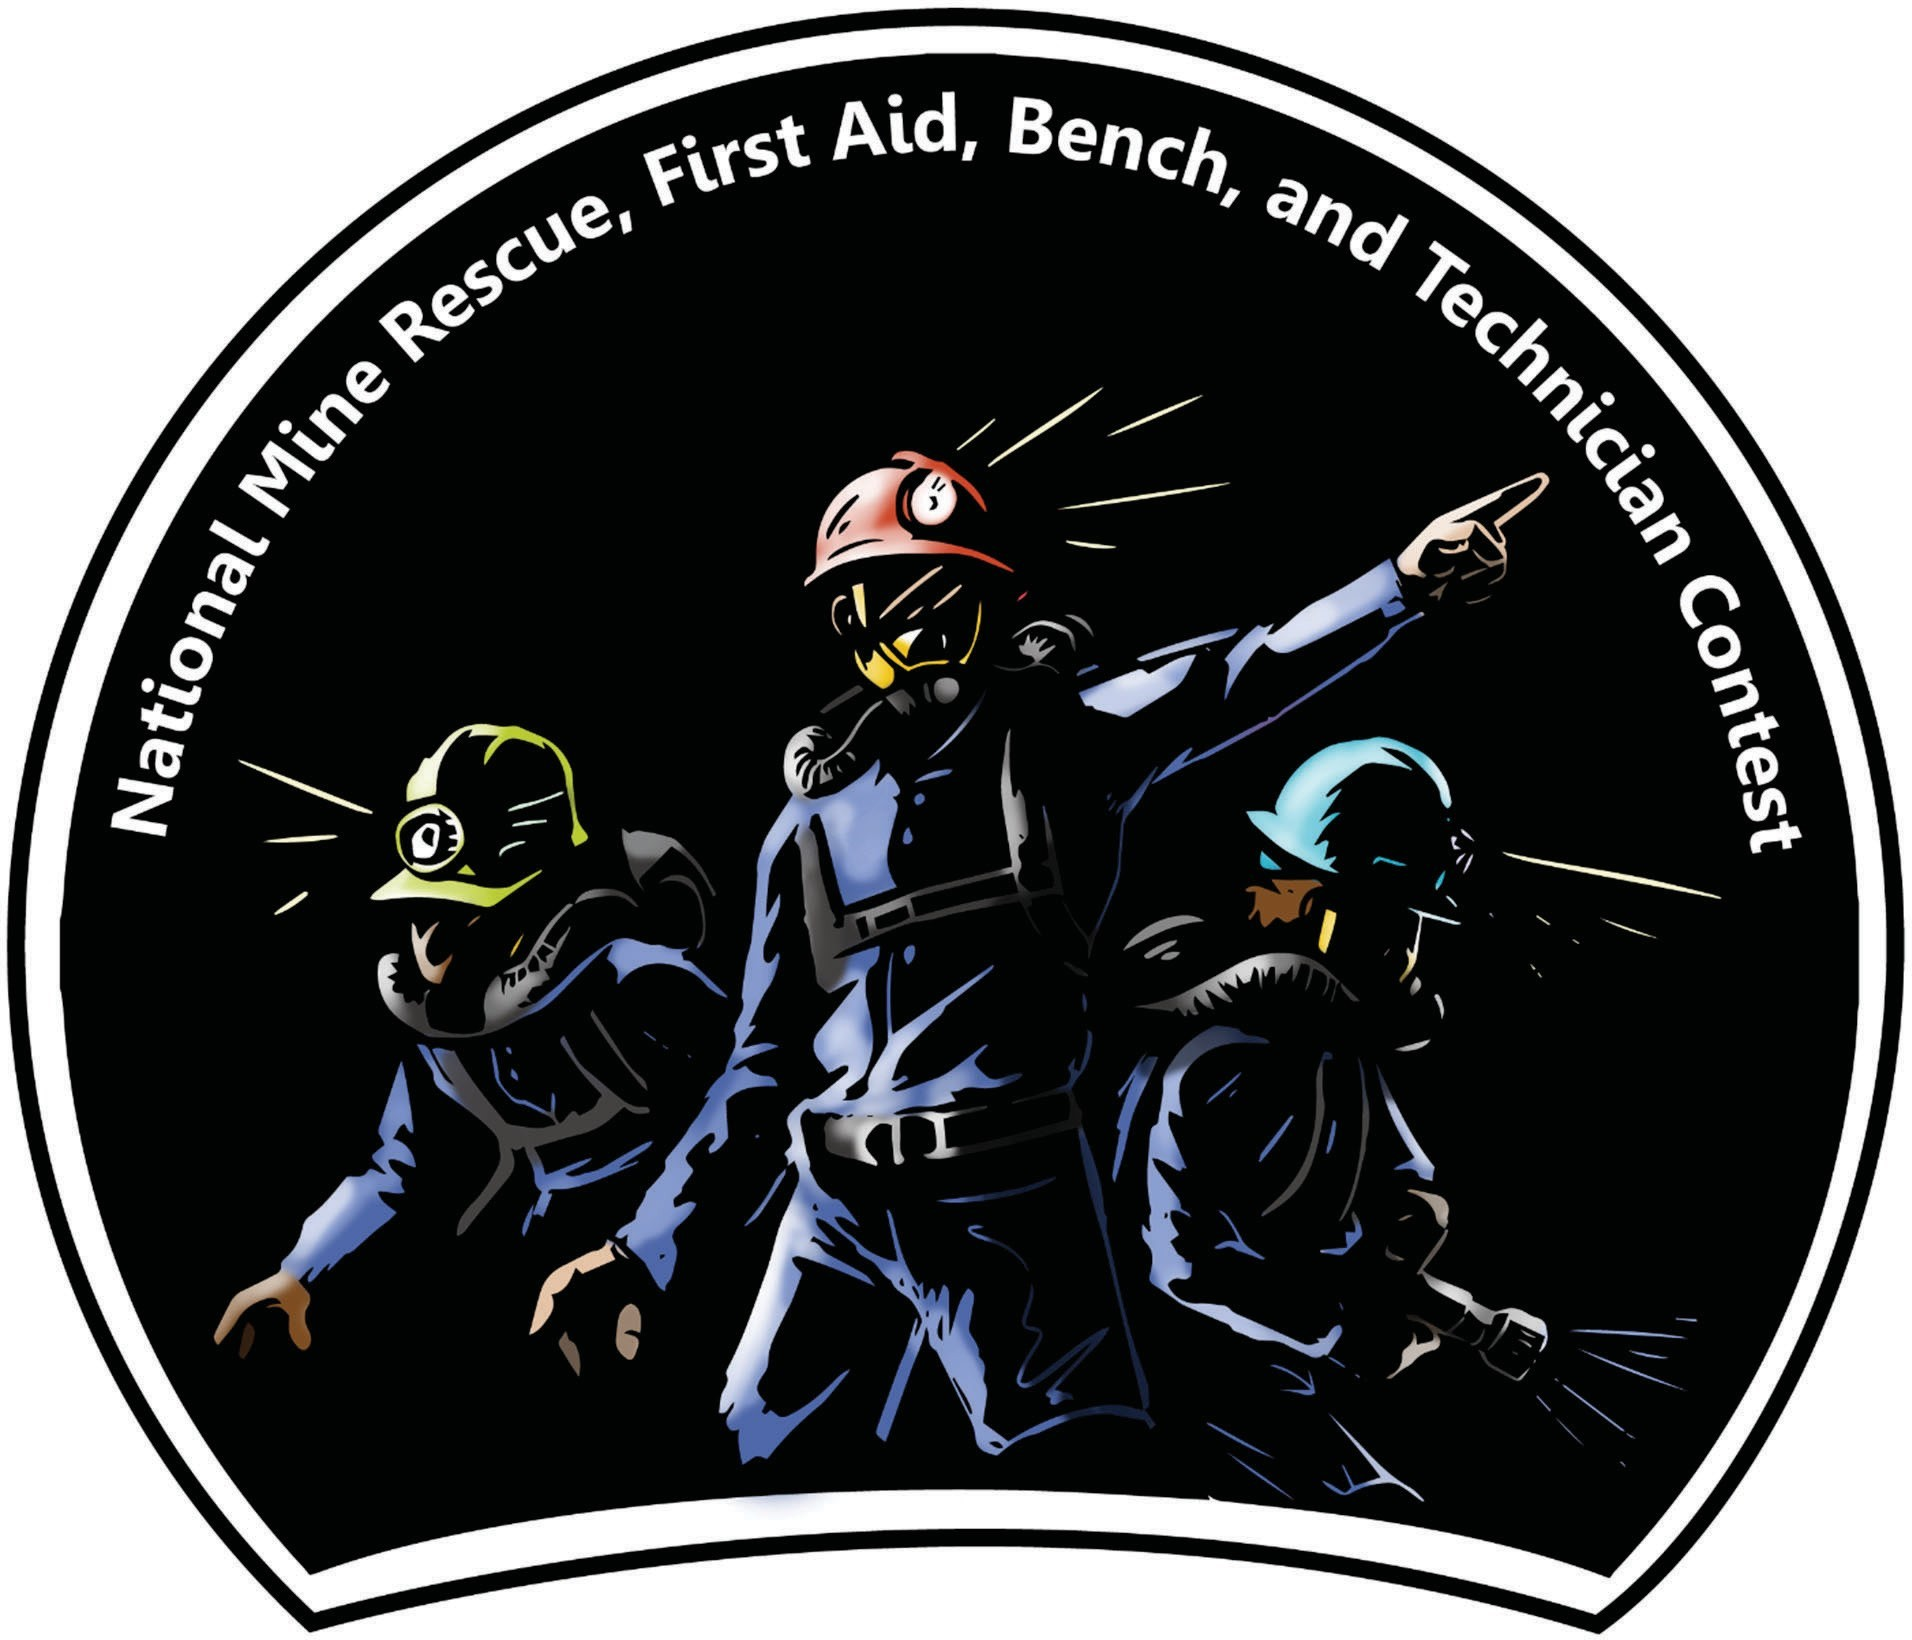 National Mine Rescue, First Aid, Bench, and Technician Contest logo